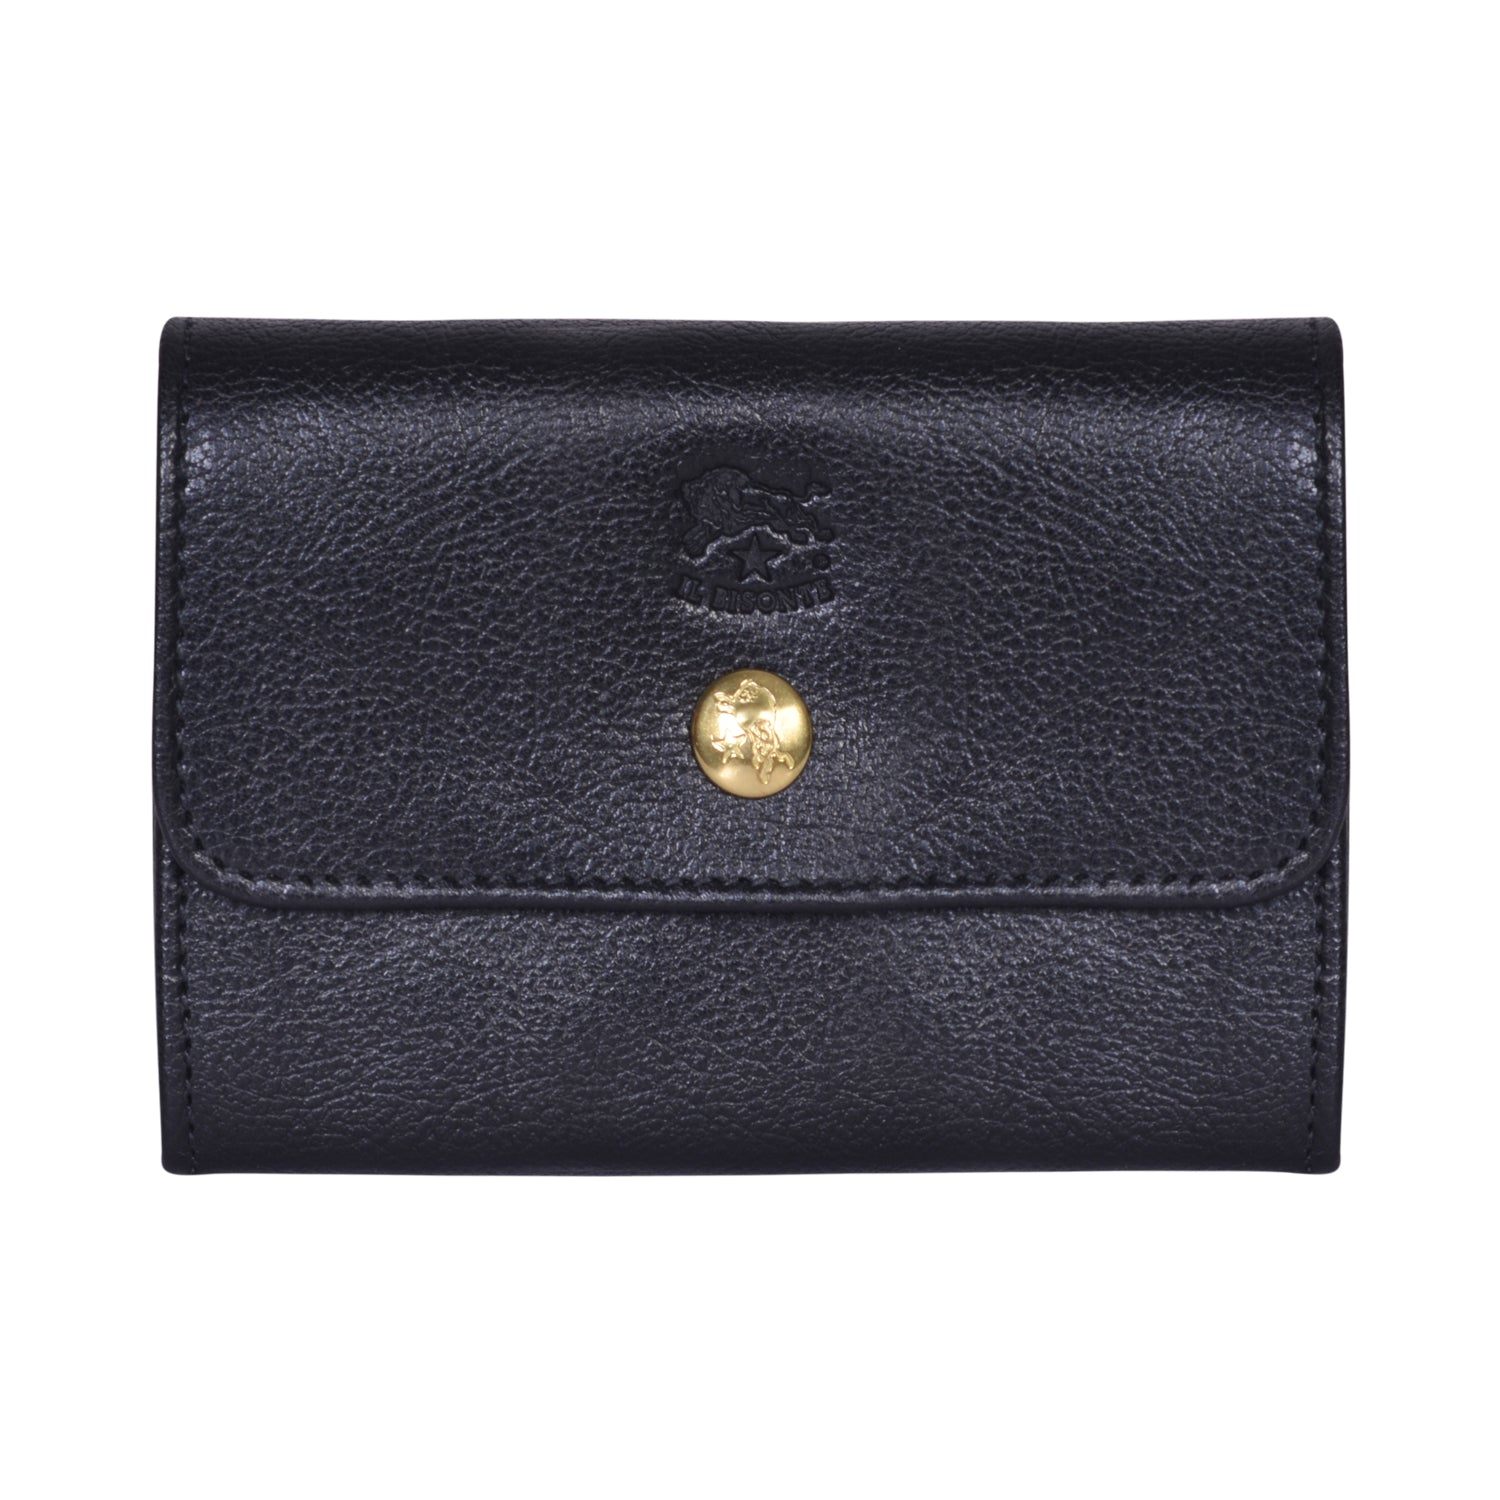 IL BISONTE LIBERTY WOMAN'S  WALLET  IN BLACK GRAIN COWHIDE LEATHER